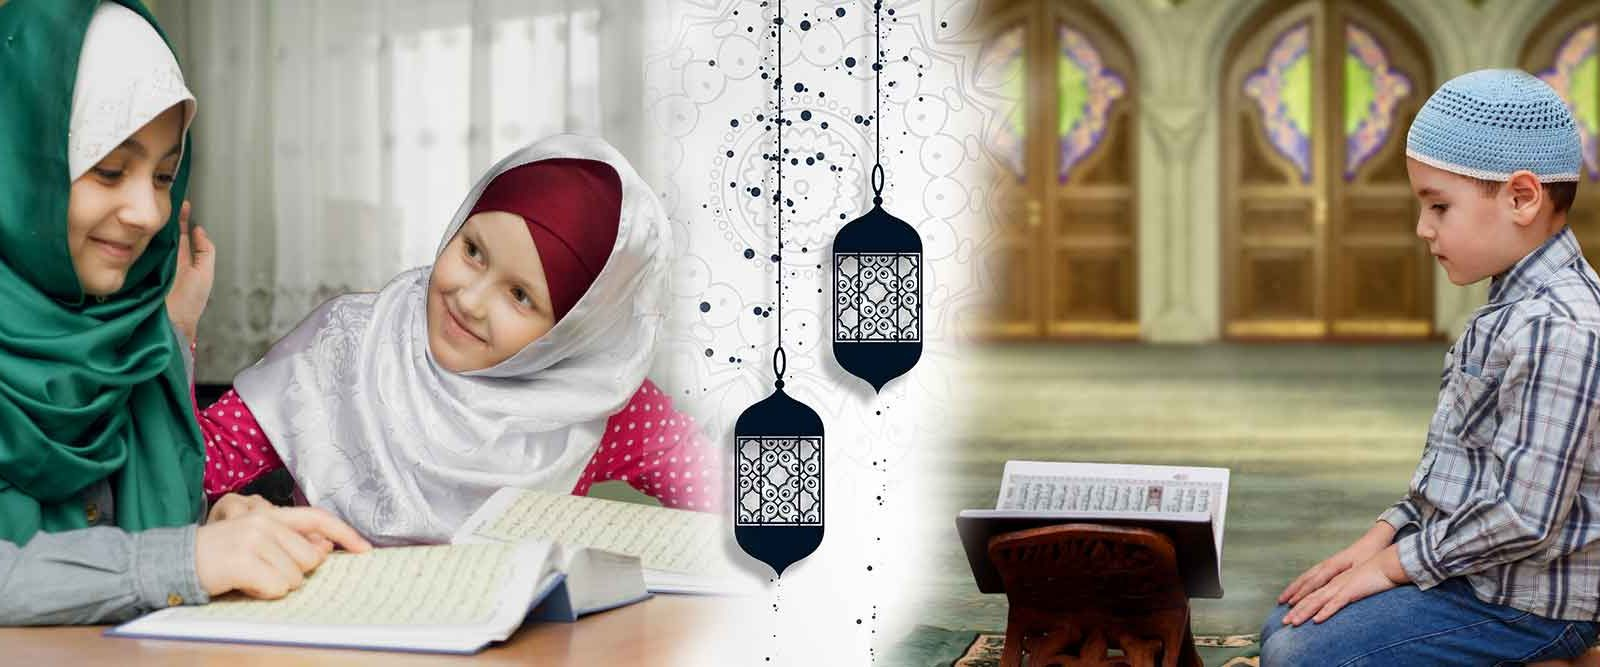 learn quran online with tajweed rules classes